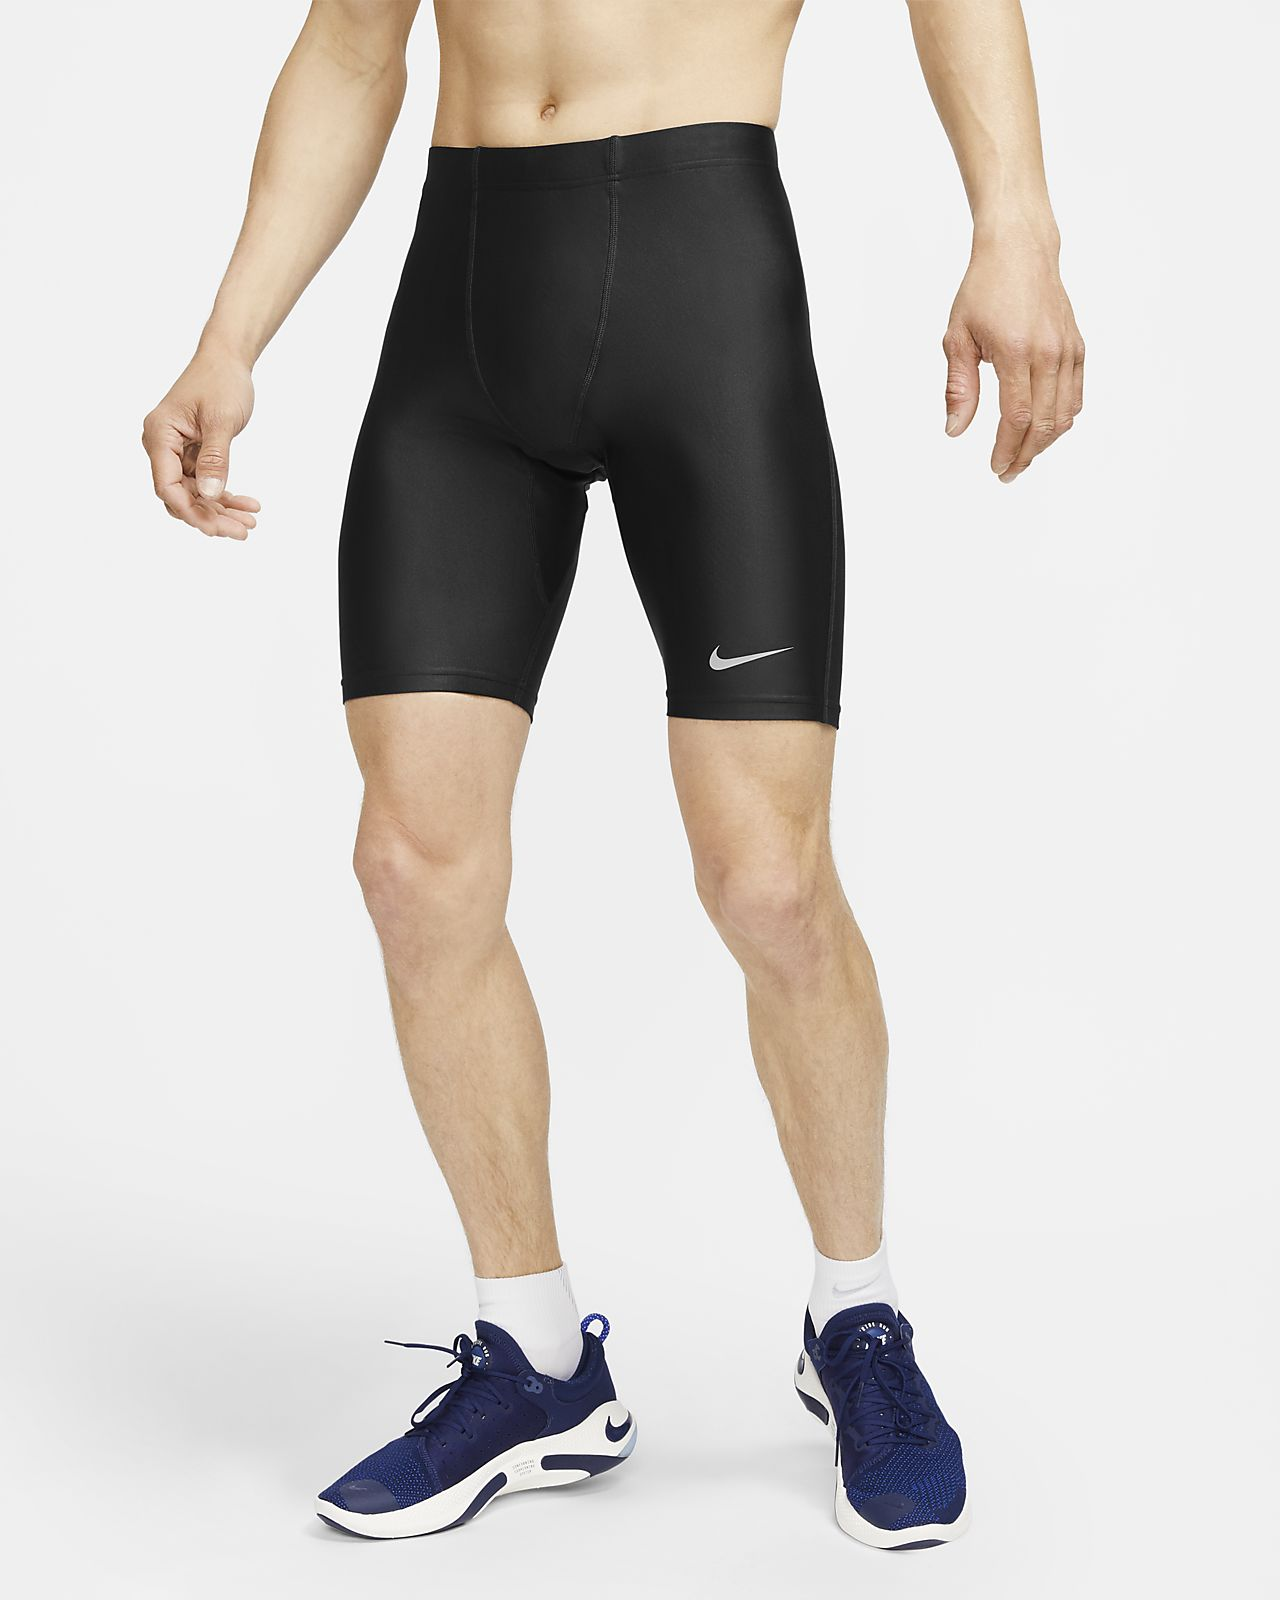 Nike Fast Men's 1/2-Length Running Shorts